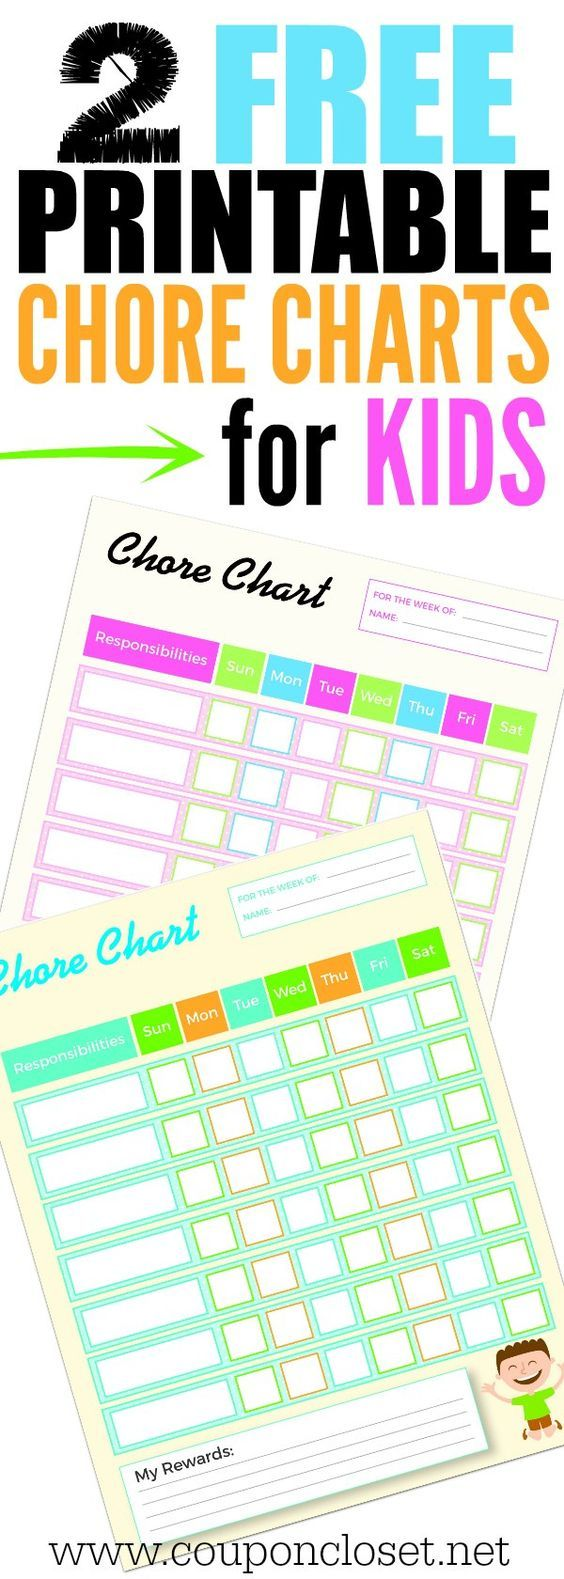 Need an easy way to motivate your kids to do chores? Here are 2 FREE Printable Chore Charts for Kids. I have also included a list of household chores for kids to help you get started. Download the printable weekly chore charts for kids today.